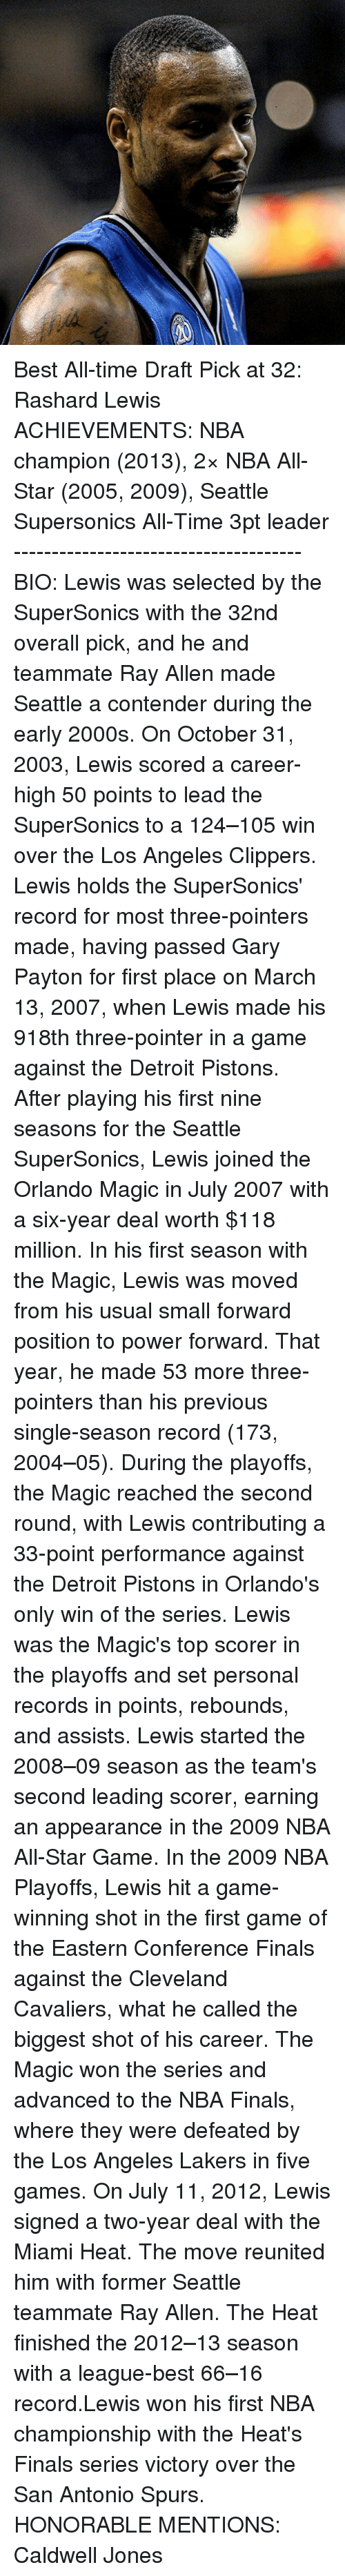 All Star, Cleveland Cavaliers, and Detroit: Best All-time Draft Pick at 32: Rashard Lewis ACHIEVEMENTS: NBA champion (2013), 2× NBA All-Star (2005, 2009), Seattle Supersonics All-Time 3pt leader -------------------------------------- BIO: Lewis was selected by the SuperSonics with the 32nd overall pick, and he and teammate Ray Allen made Seattle a contender during the early 2000s. On October 31, 2003, Lewis scored a career-high 50 points to lead the SuperSonics to a 124–105 win over the Los Angeles Clippers. Lewis holds the SuperSonics' record for most three-pointers made, having passed Gary Payton for first place on March 13, 2007, when Lewis made his 918th three-pointer in a game against the Detroit Pistons. After playing his first nine seasons for the Seattle SuperSonics, Lewis joined the Orlando Magic in July 2007 with a six-year deal worth $118 million. In his first season with the Magic, Lewis was moved from his usual small forward position to power forward. That year, he made 53 more three-pointers than his previous single-season record (173, 2004–05). During the playoffs, the Magic reached the second round, with Lewis contributing a 33-point performance against the Detroit Pistons in Orlando's only win of the series. Lewis was the Magic's top scorer in the playoffs and set personal records in points, rebounds, and assists. Lewis started the 2008–09 season as the team's second leading scorer, earning an appearance in the 2009 NBA All-Star Game. In the 2009 NBA Playoffs, Lewis hit a game-winning shot in the first game of the Eastern Conference Finals against the Cleveland Cavaliers, what he called the biggest shot of his career. The Magic won the series and advanced to the NBA Finals, where they were defeated by the Los Angeles Lakers in five games. On July 11, 2012, Lewis signed a two-year deal with the Miami Heat. The move reunited him with former Seattle teammate Ray Allen. The Heat finished the 2012–13 season with a league-best 66–16 record.Lewis won his f